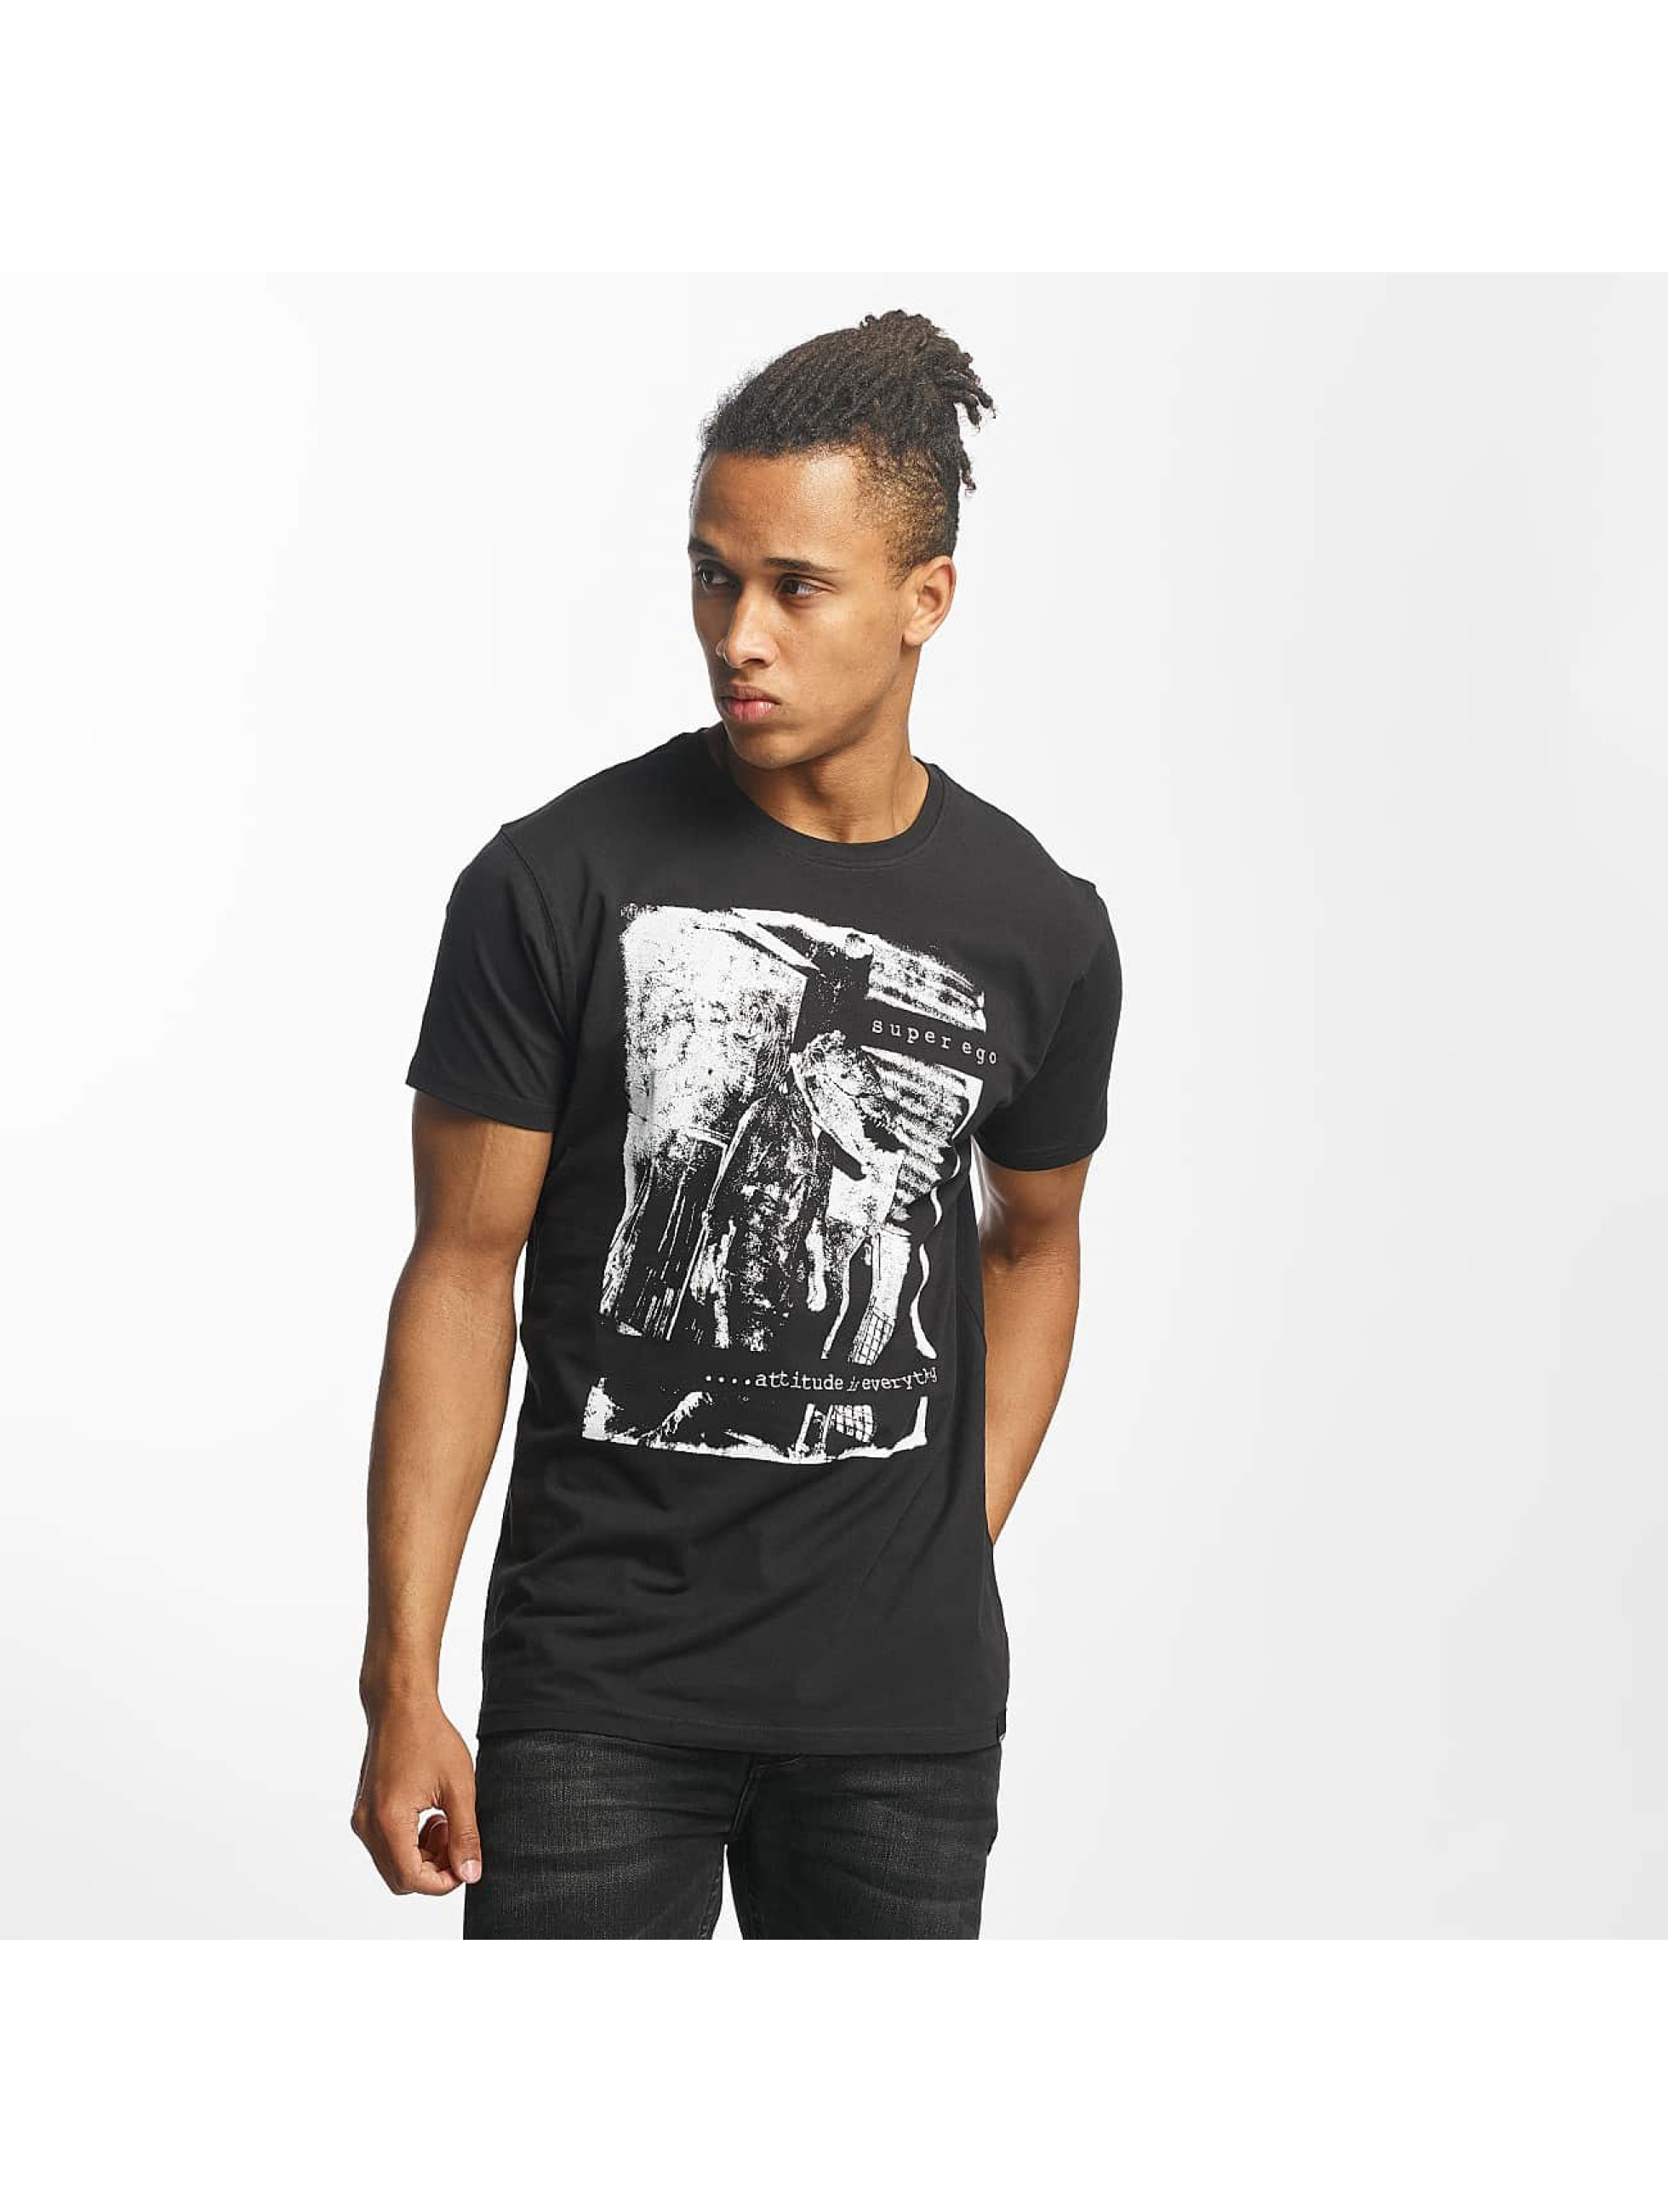 Paris Premium T-Shirt Attitude is everything black